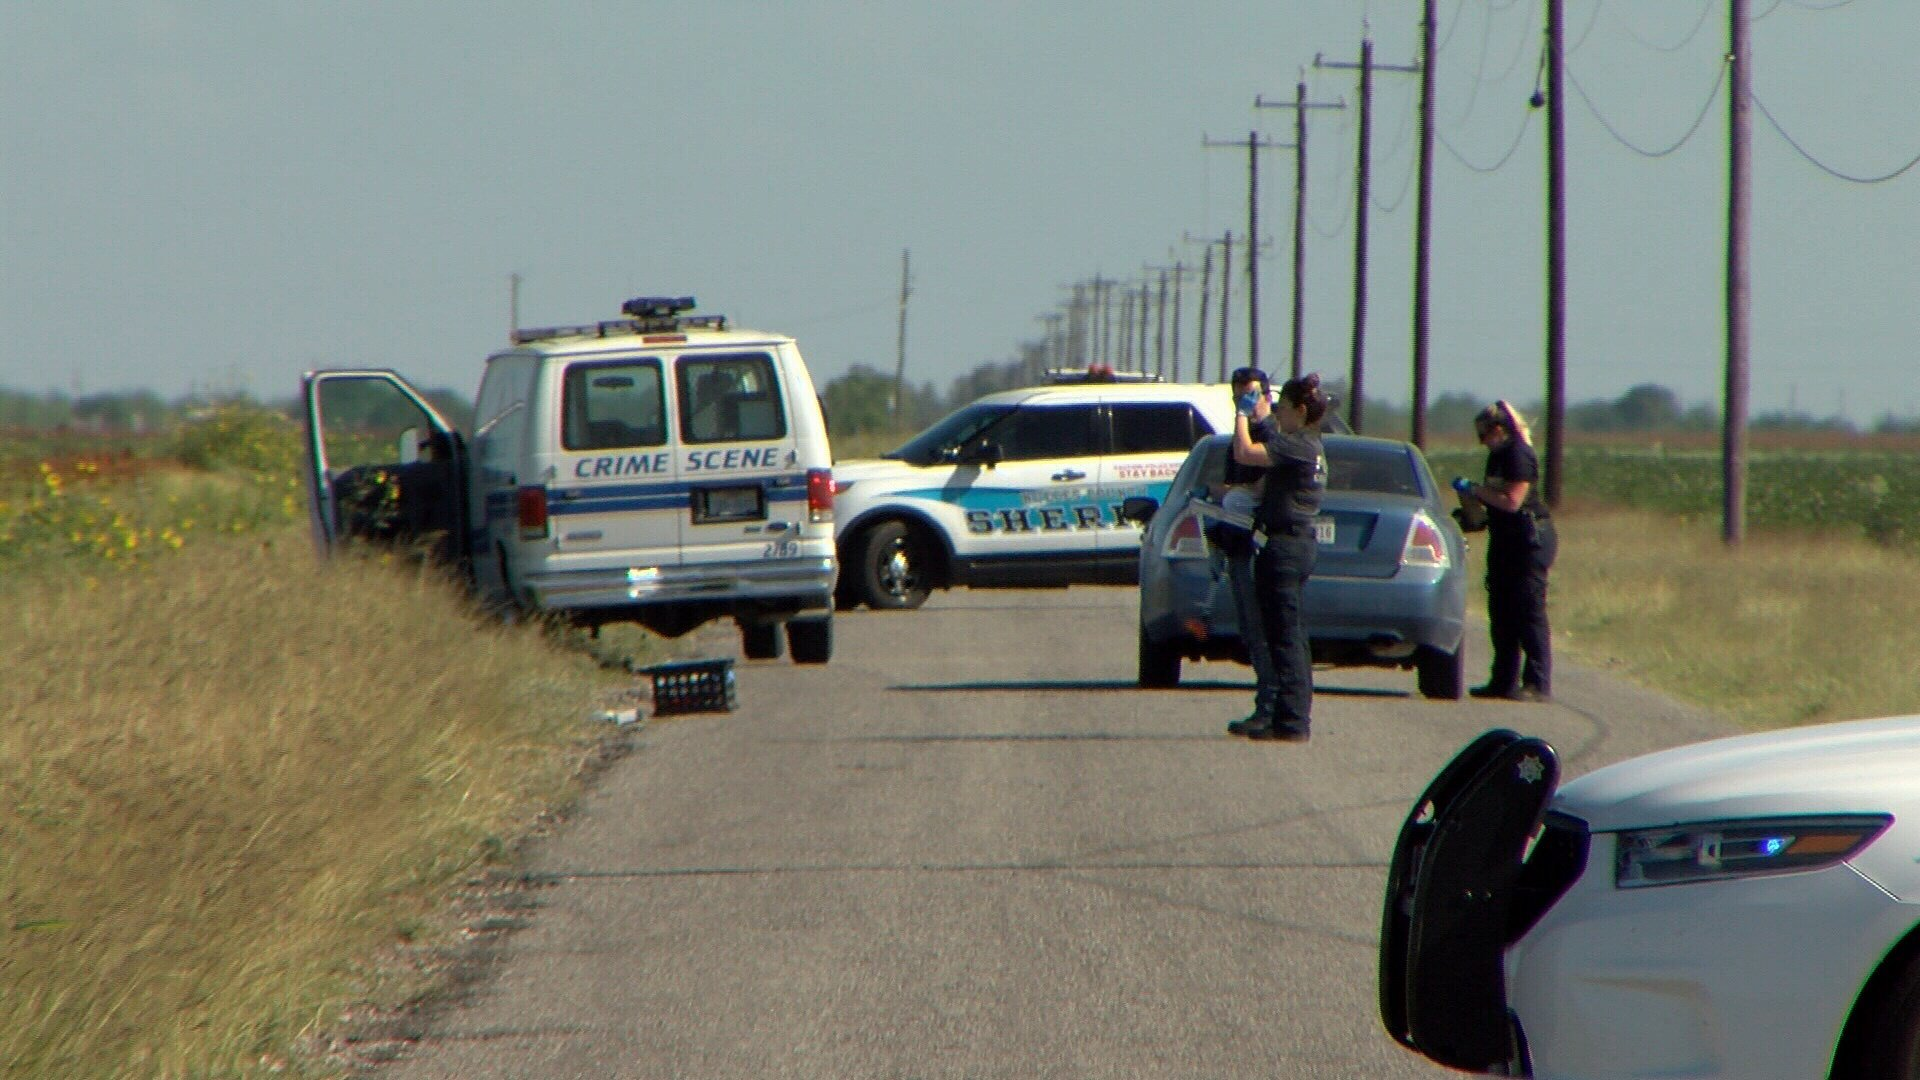 Police sent out a notice that they found a body near CR 63 and CR 20.